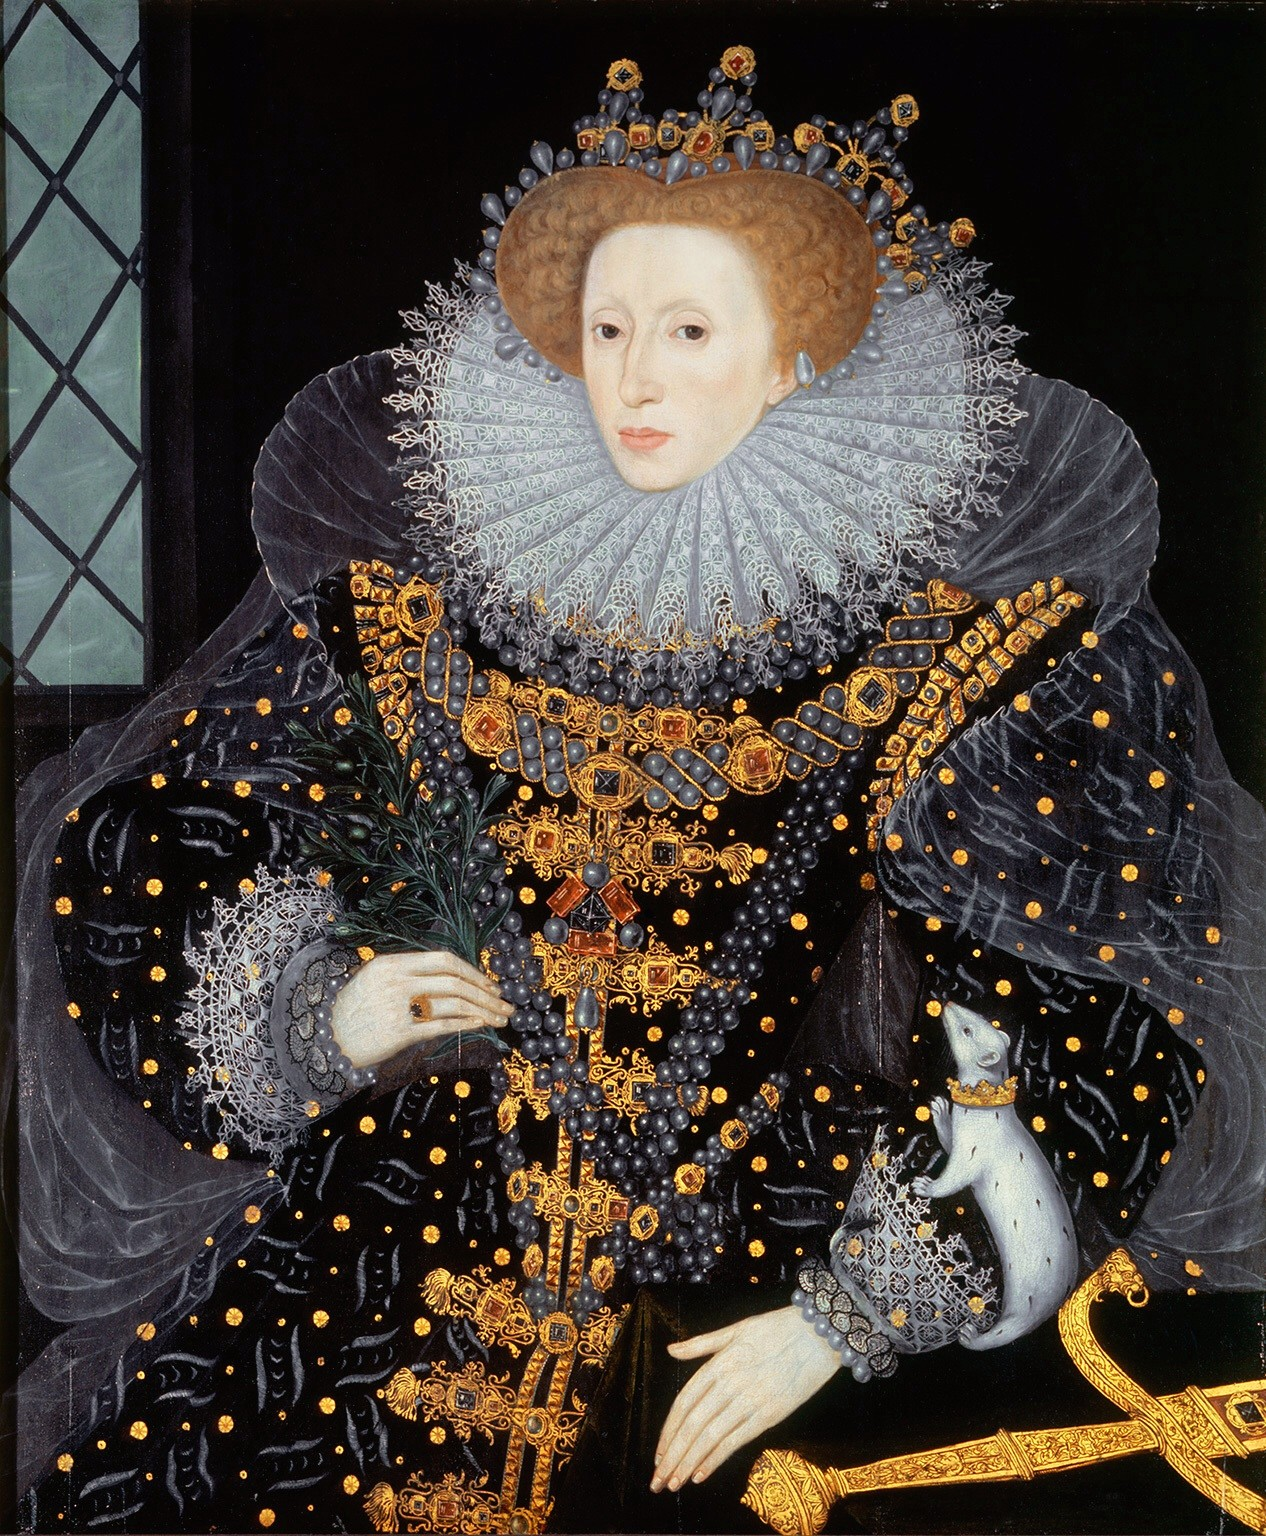 An image of Queen Elizabeth I.